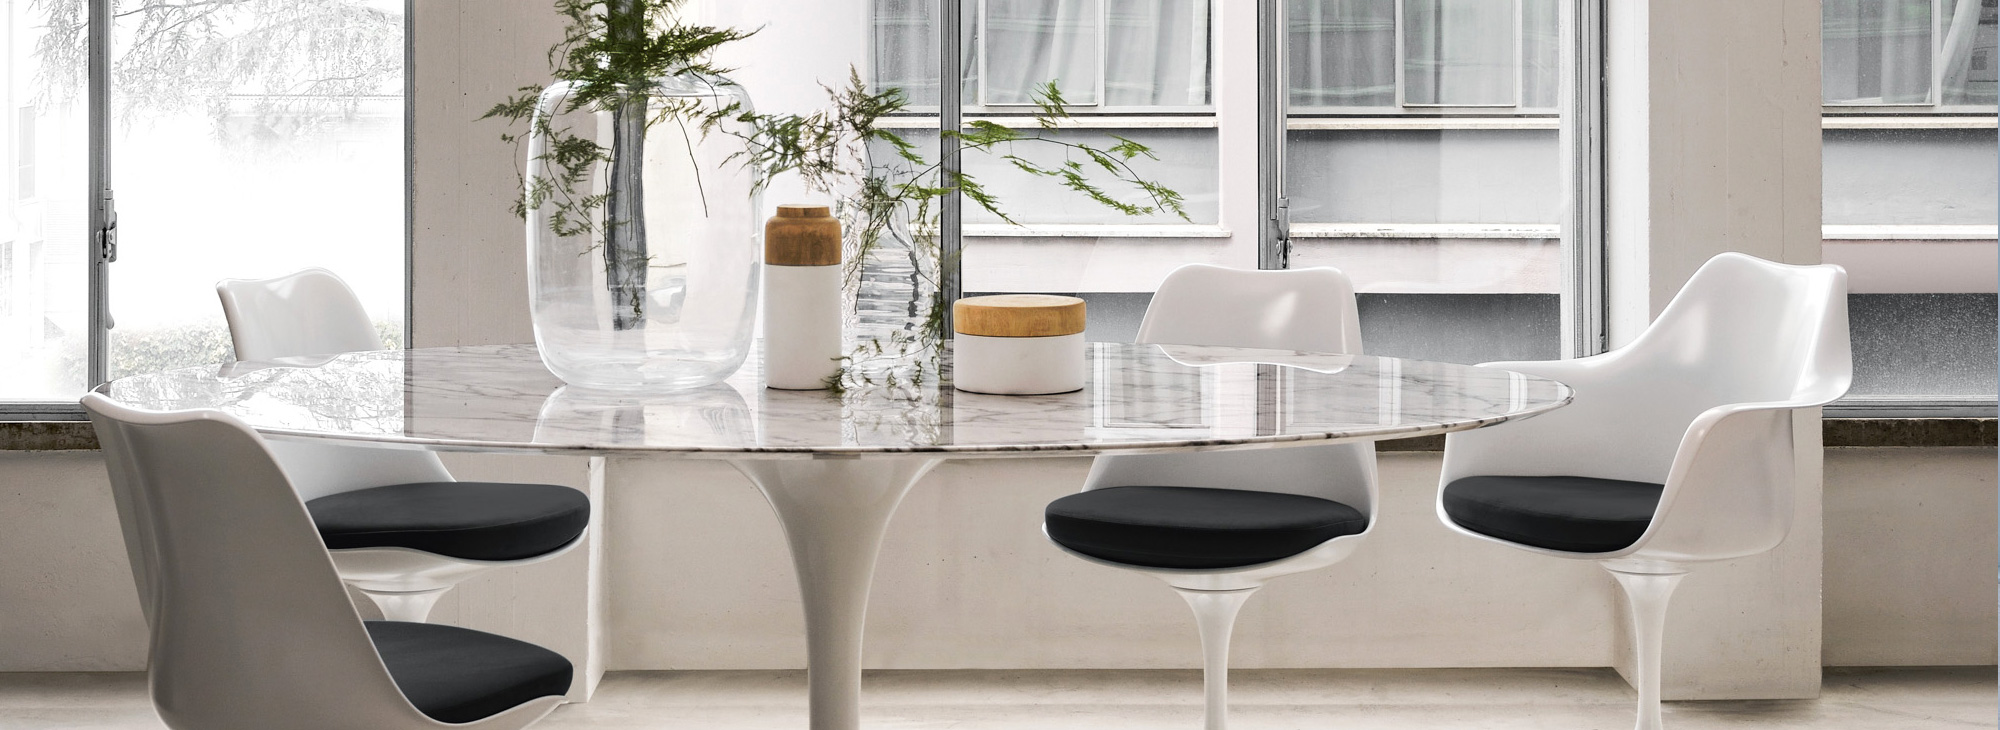 Knoll Dining Room Furniture